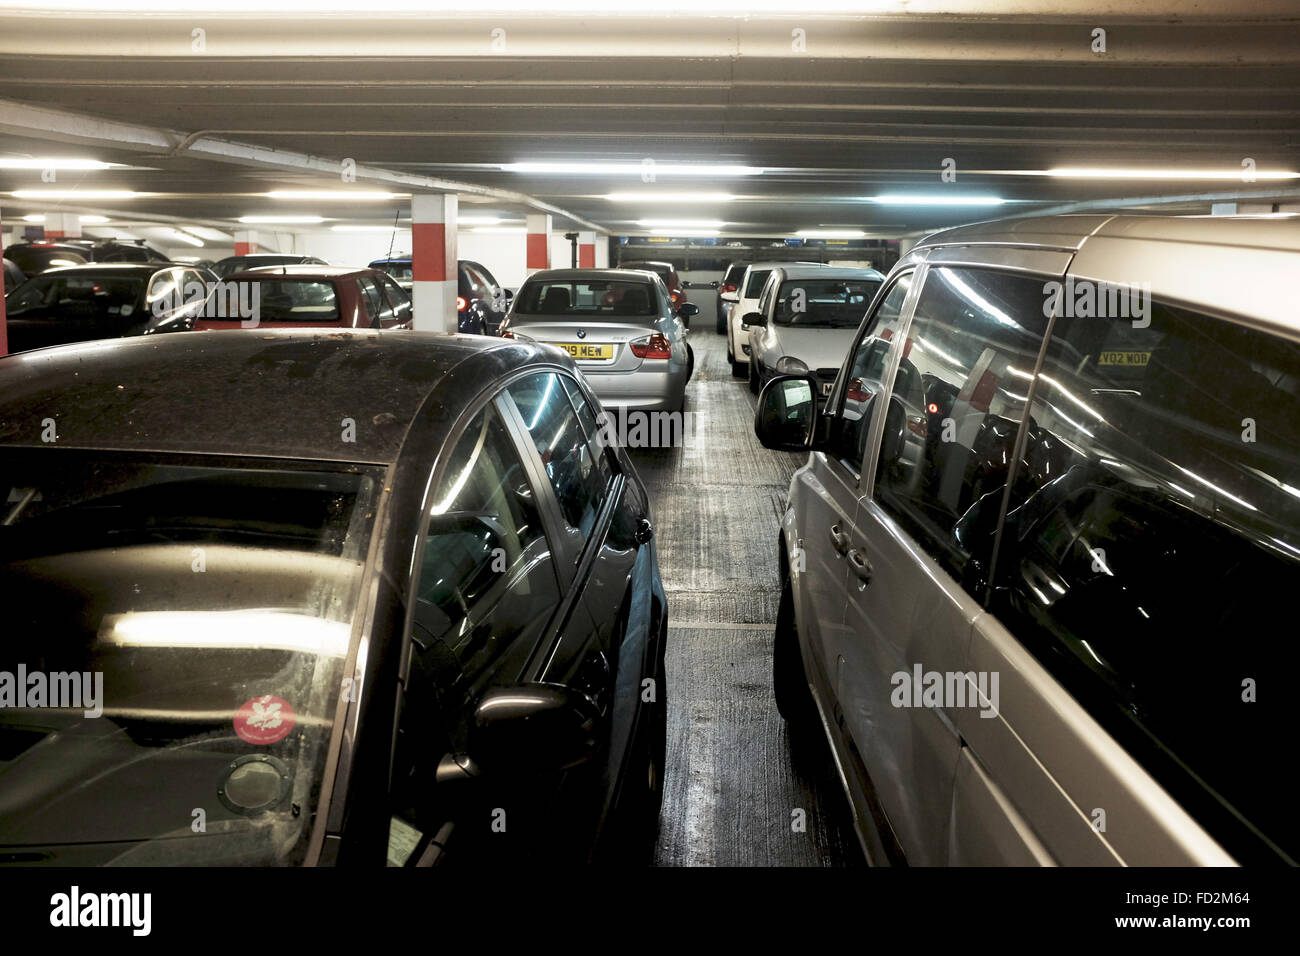 Cars Parked In Multi Storey Car Park High Resolution Stock Photography And Images Alamy